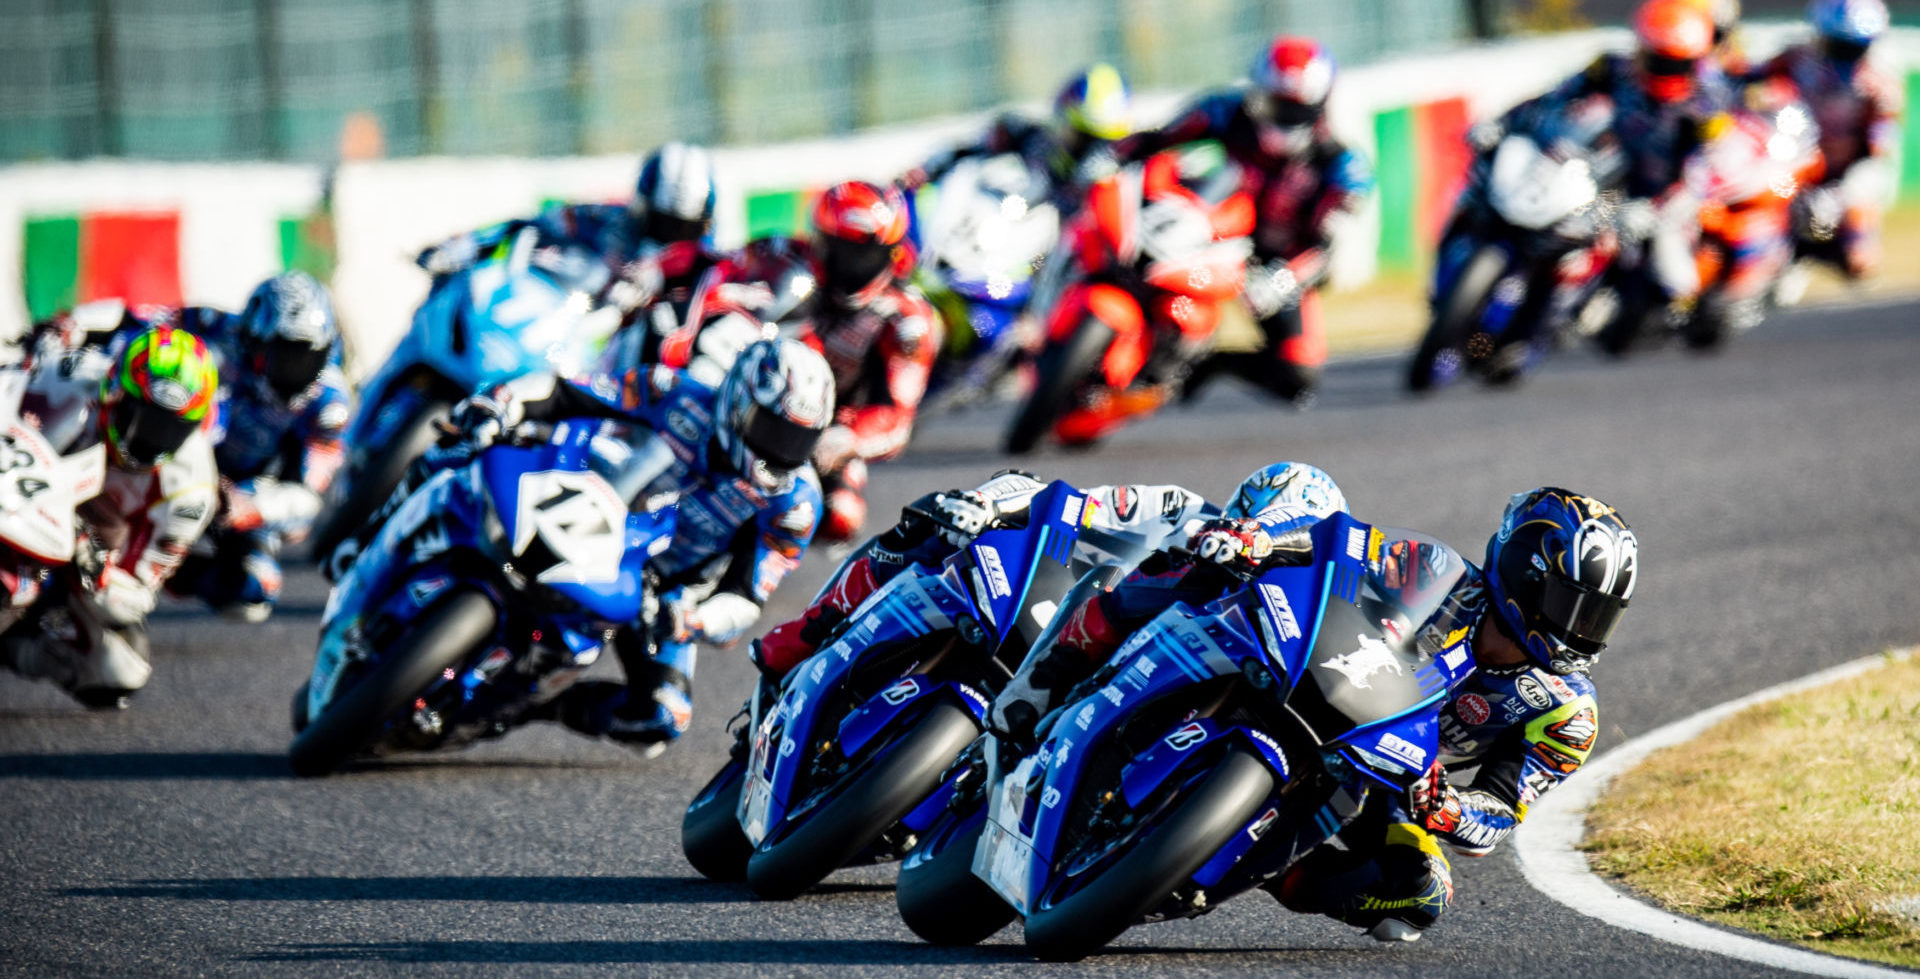 Katsuyuki Nakasuga (1) leads Kohta Nozane (3) and the rest of the field during the start of MFJ All-Japan JSB1000 Race One at Suzuka. Photo by Kohei Hirota Photography.